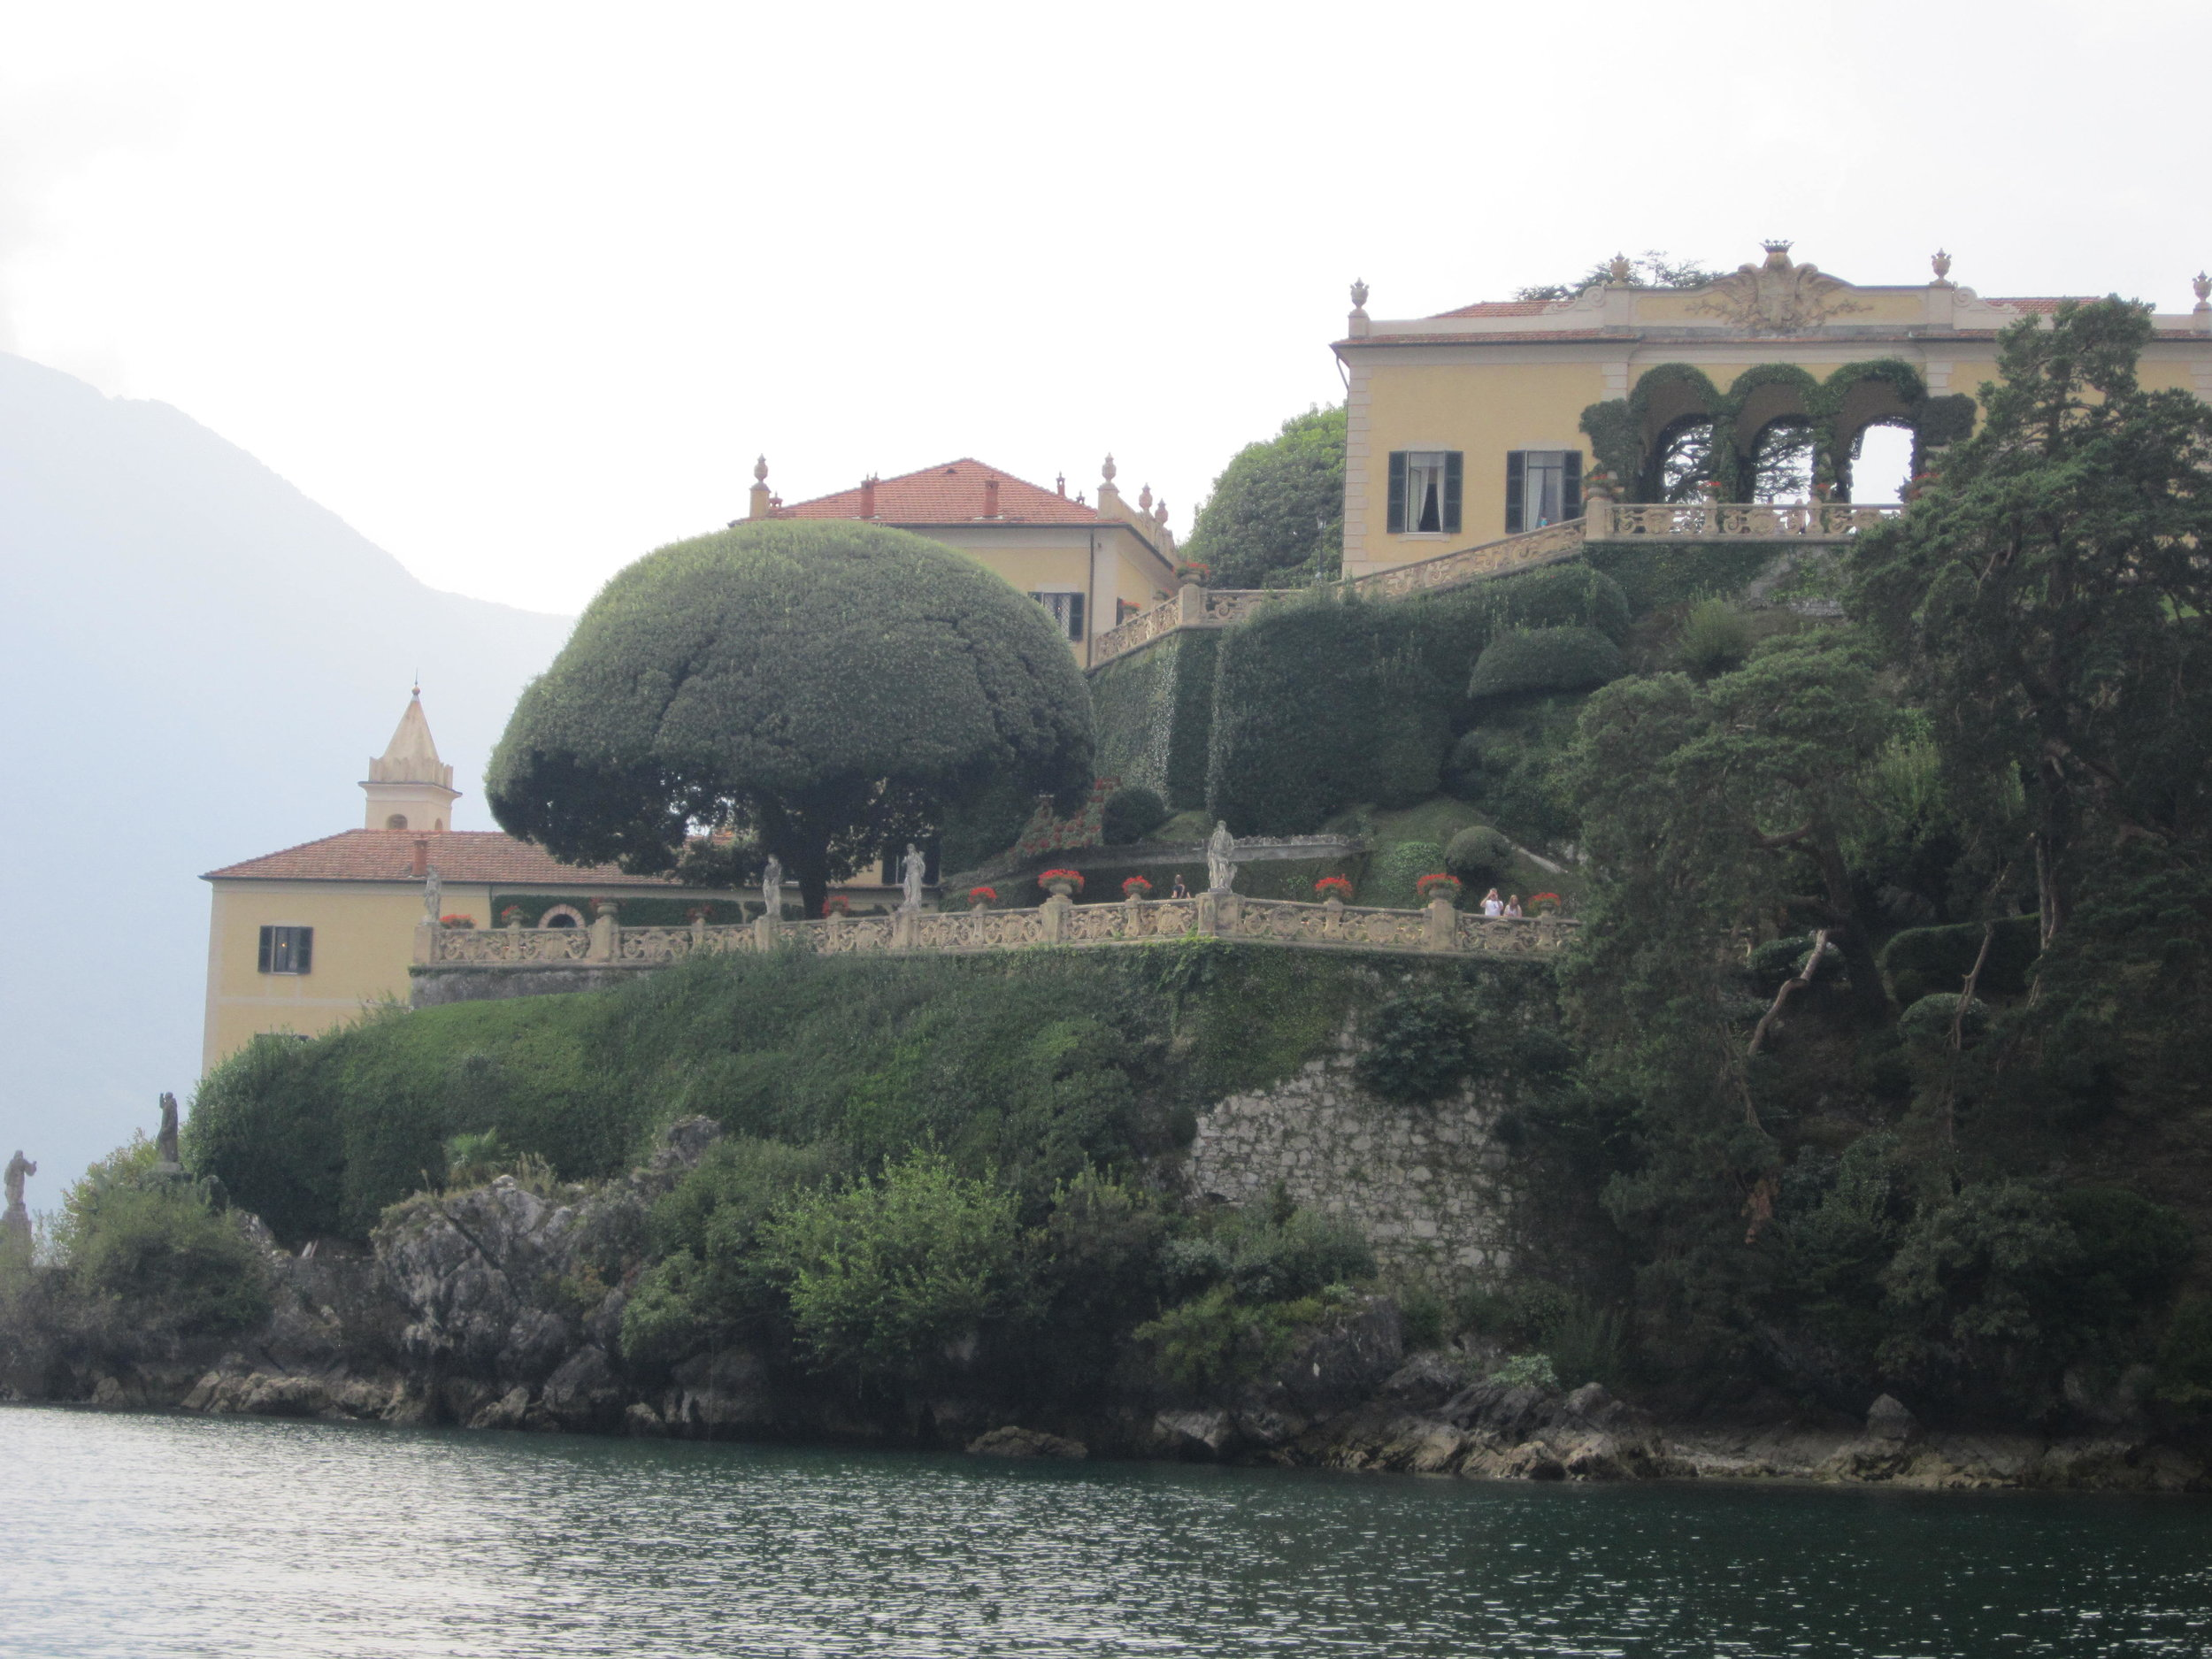 Villa del Balbianello as seen from the lake. The three arches of the loggia, which are flanked by the map room and the library, lie at the top right of the photo. Both loggia rooms, as well as the interior of the villa, can be seen on a guided tour of the property.